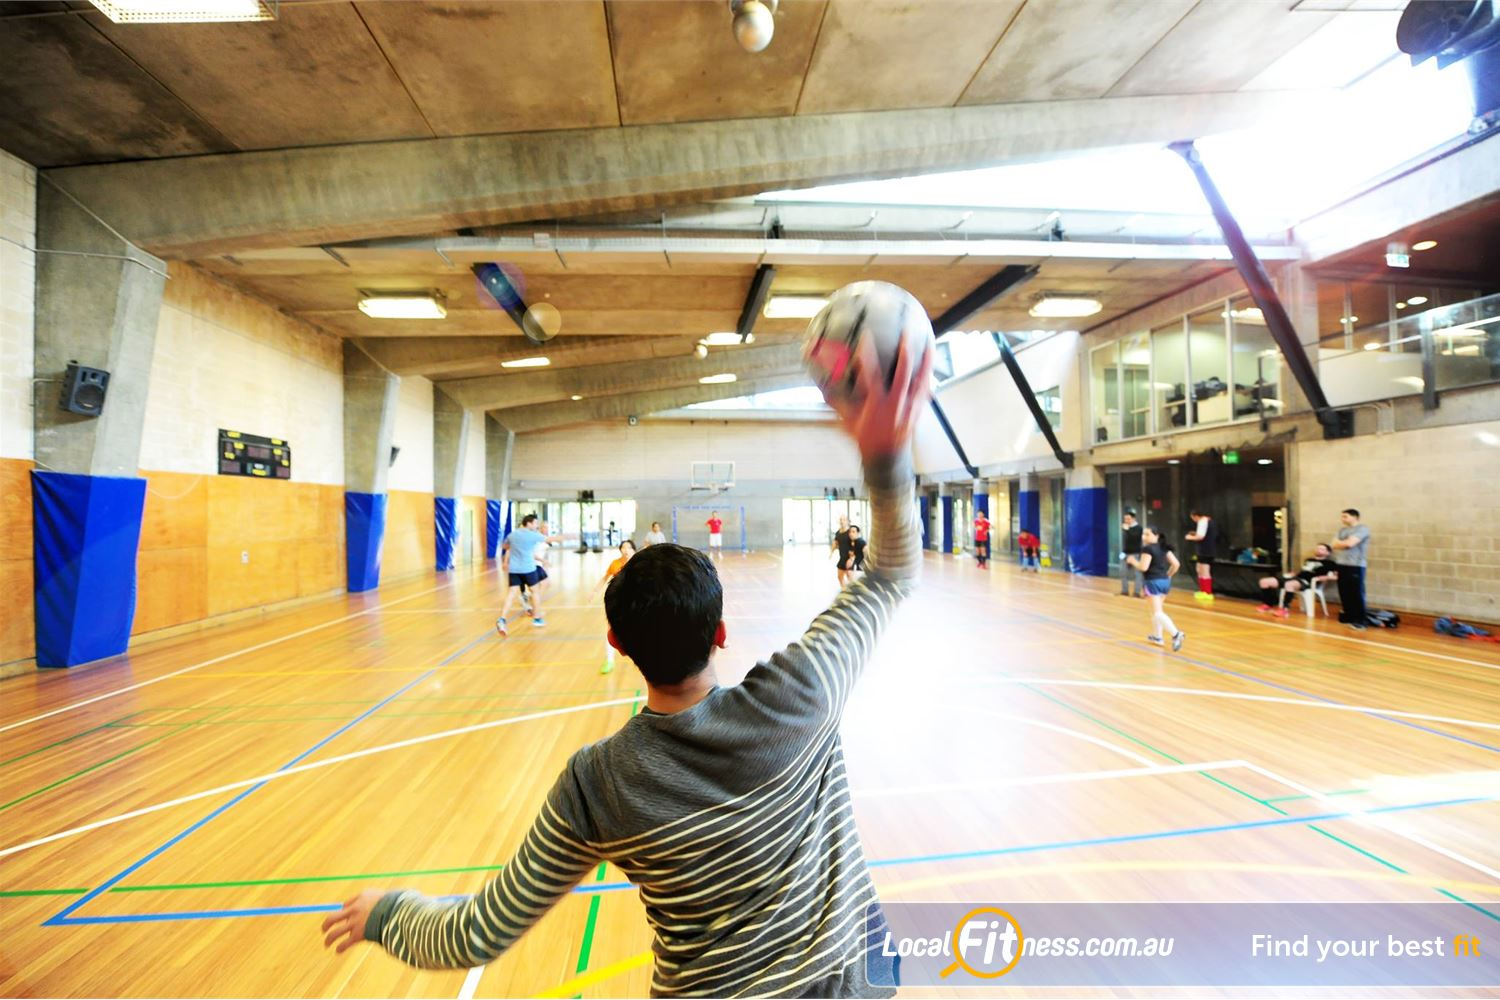 Cook and Phillip Park Aquatic and Fitness Centre Sydney Our multi-sport Sydney stadium caters for futsal, netball, volleyball and more.